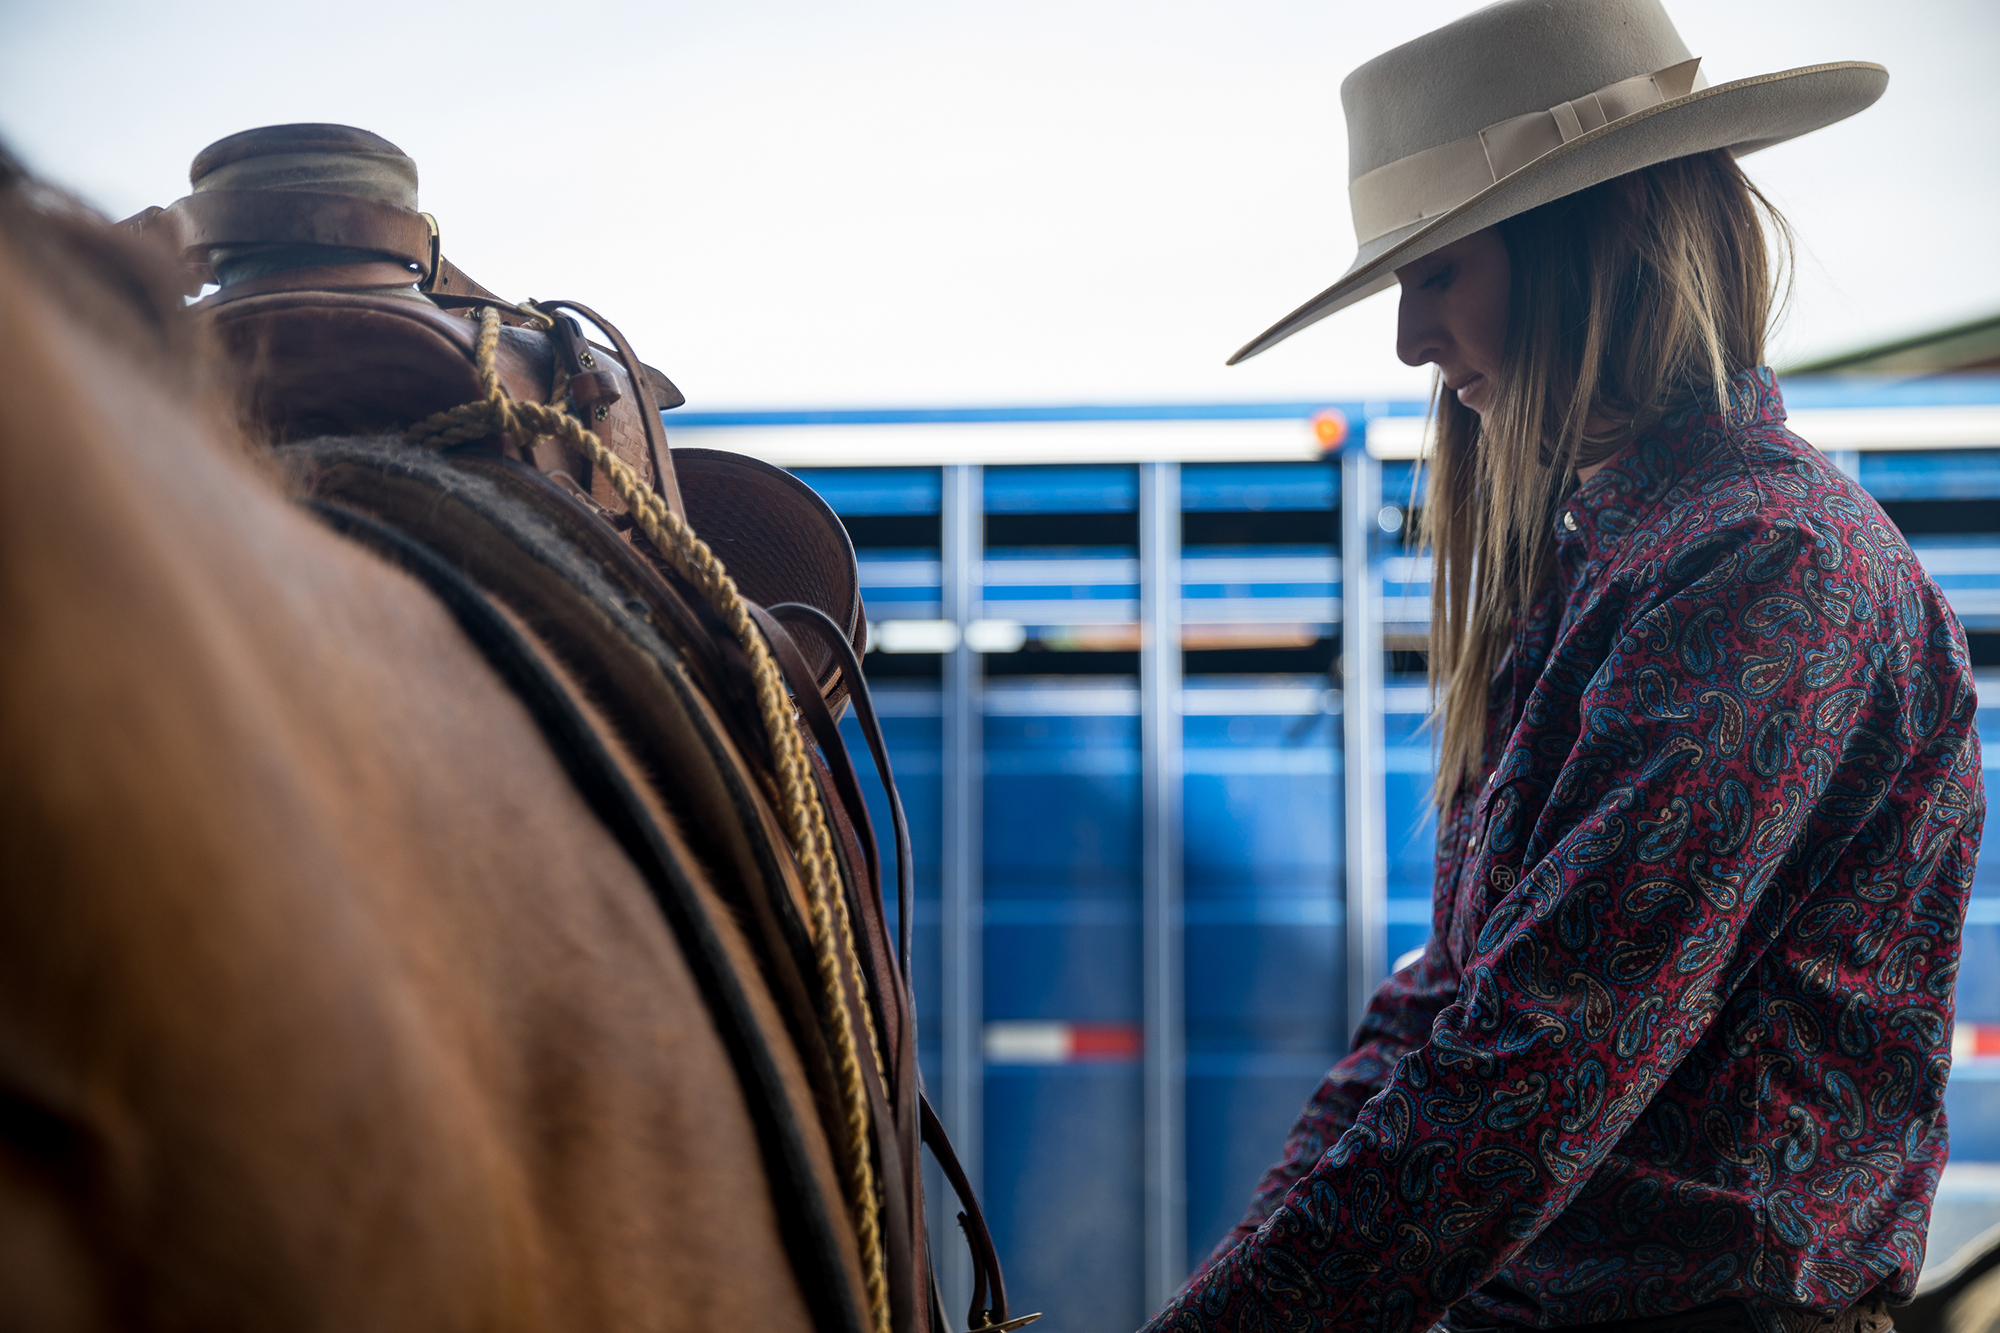 Tightening the cinch before trailering the horses to a branding.